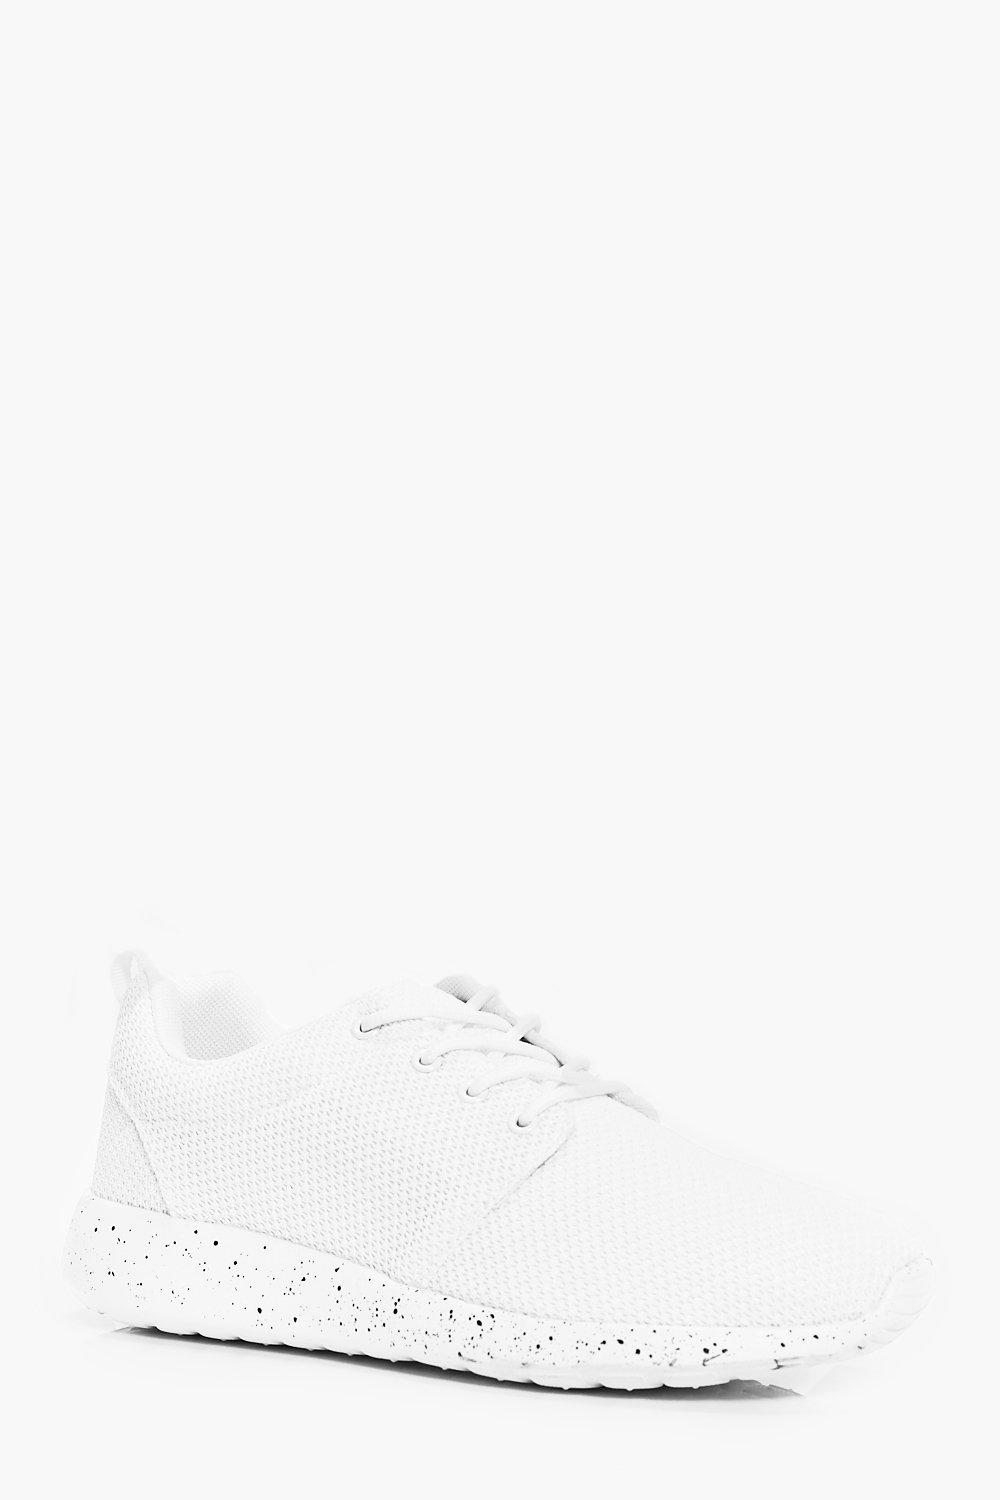 Product photo of Up running trainers with speckled sole white